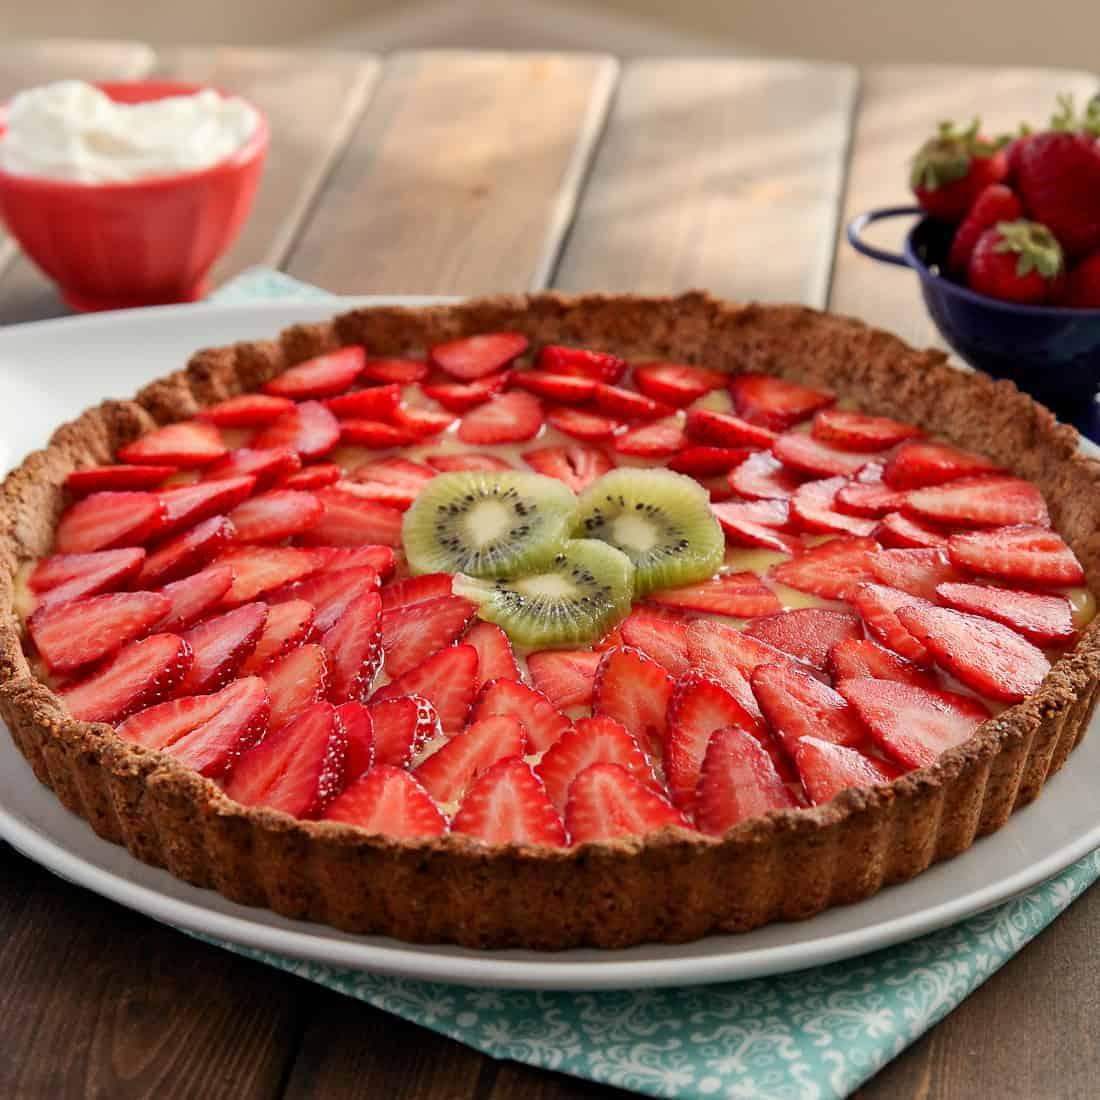 Gluten-free Strawberry Lemon Curd Tart